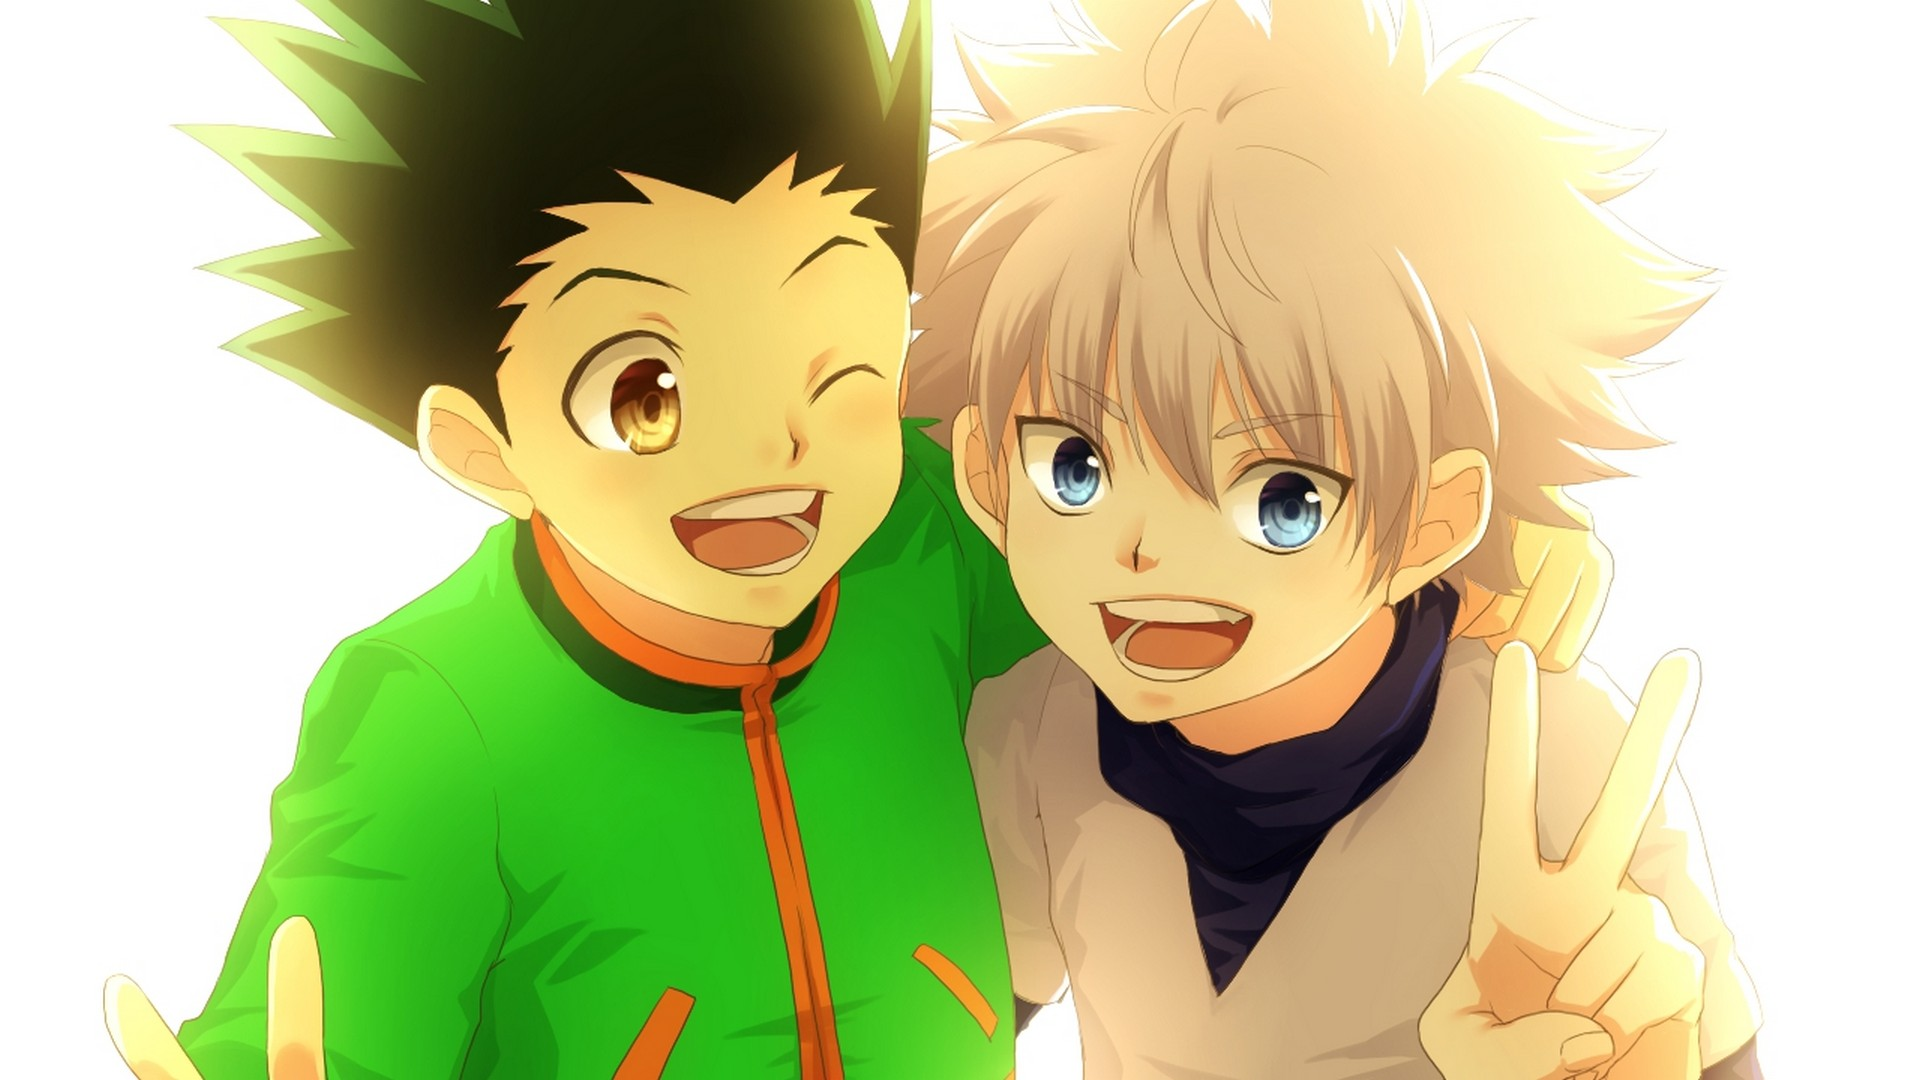 Start your search now and free your phone. Gon And Killua Wallpaper HD | 2021 Live Wallpaper HD